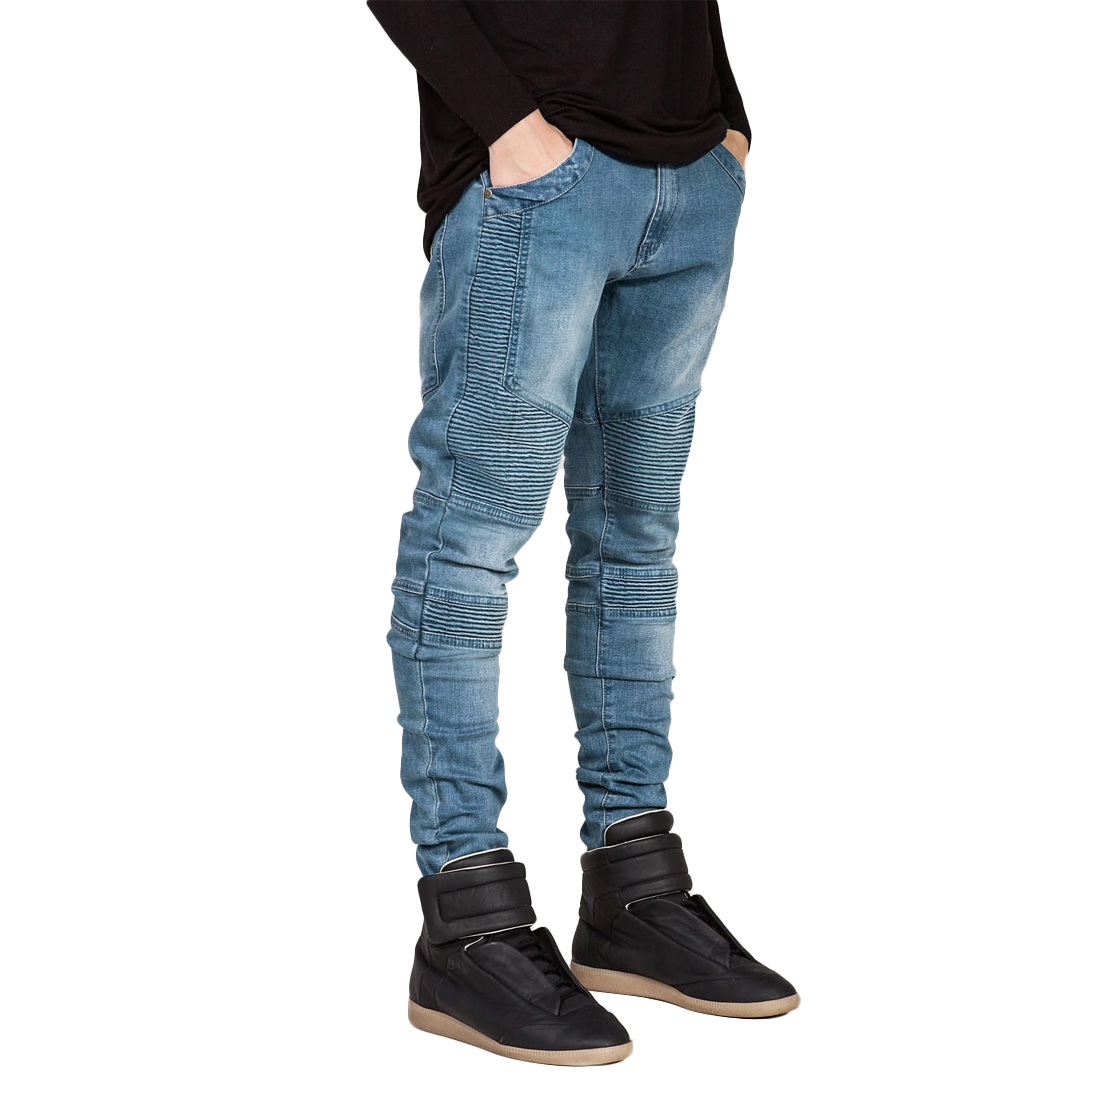 Black Blue Gray Stretchy Jeans Men Zipper Up Slim Fit Mens Denim Trousers 2017 New Patchwork Solid Men Brand Jeans Pants Ripped 2017 fashion patch jeans men slim straight denim jeans ripped trousers new famous brand biker jeans logo mens zipper jeans 604